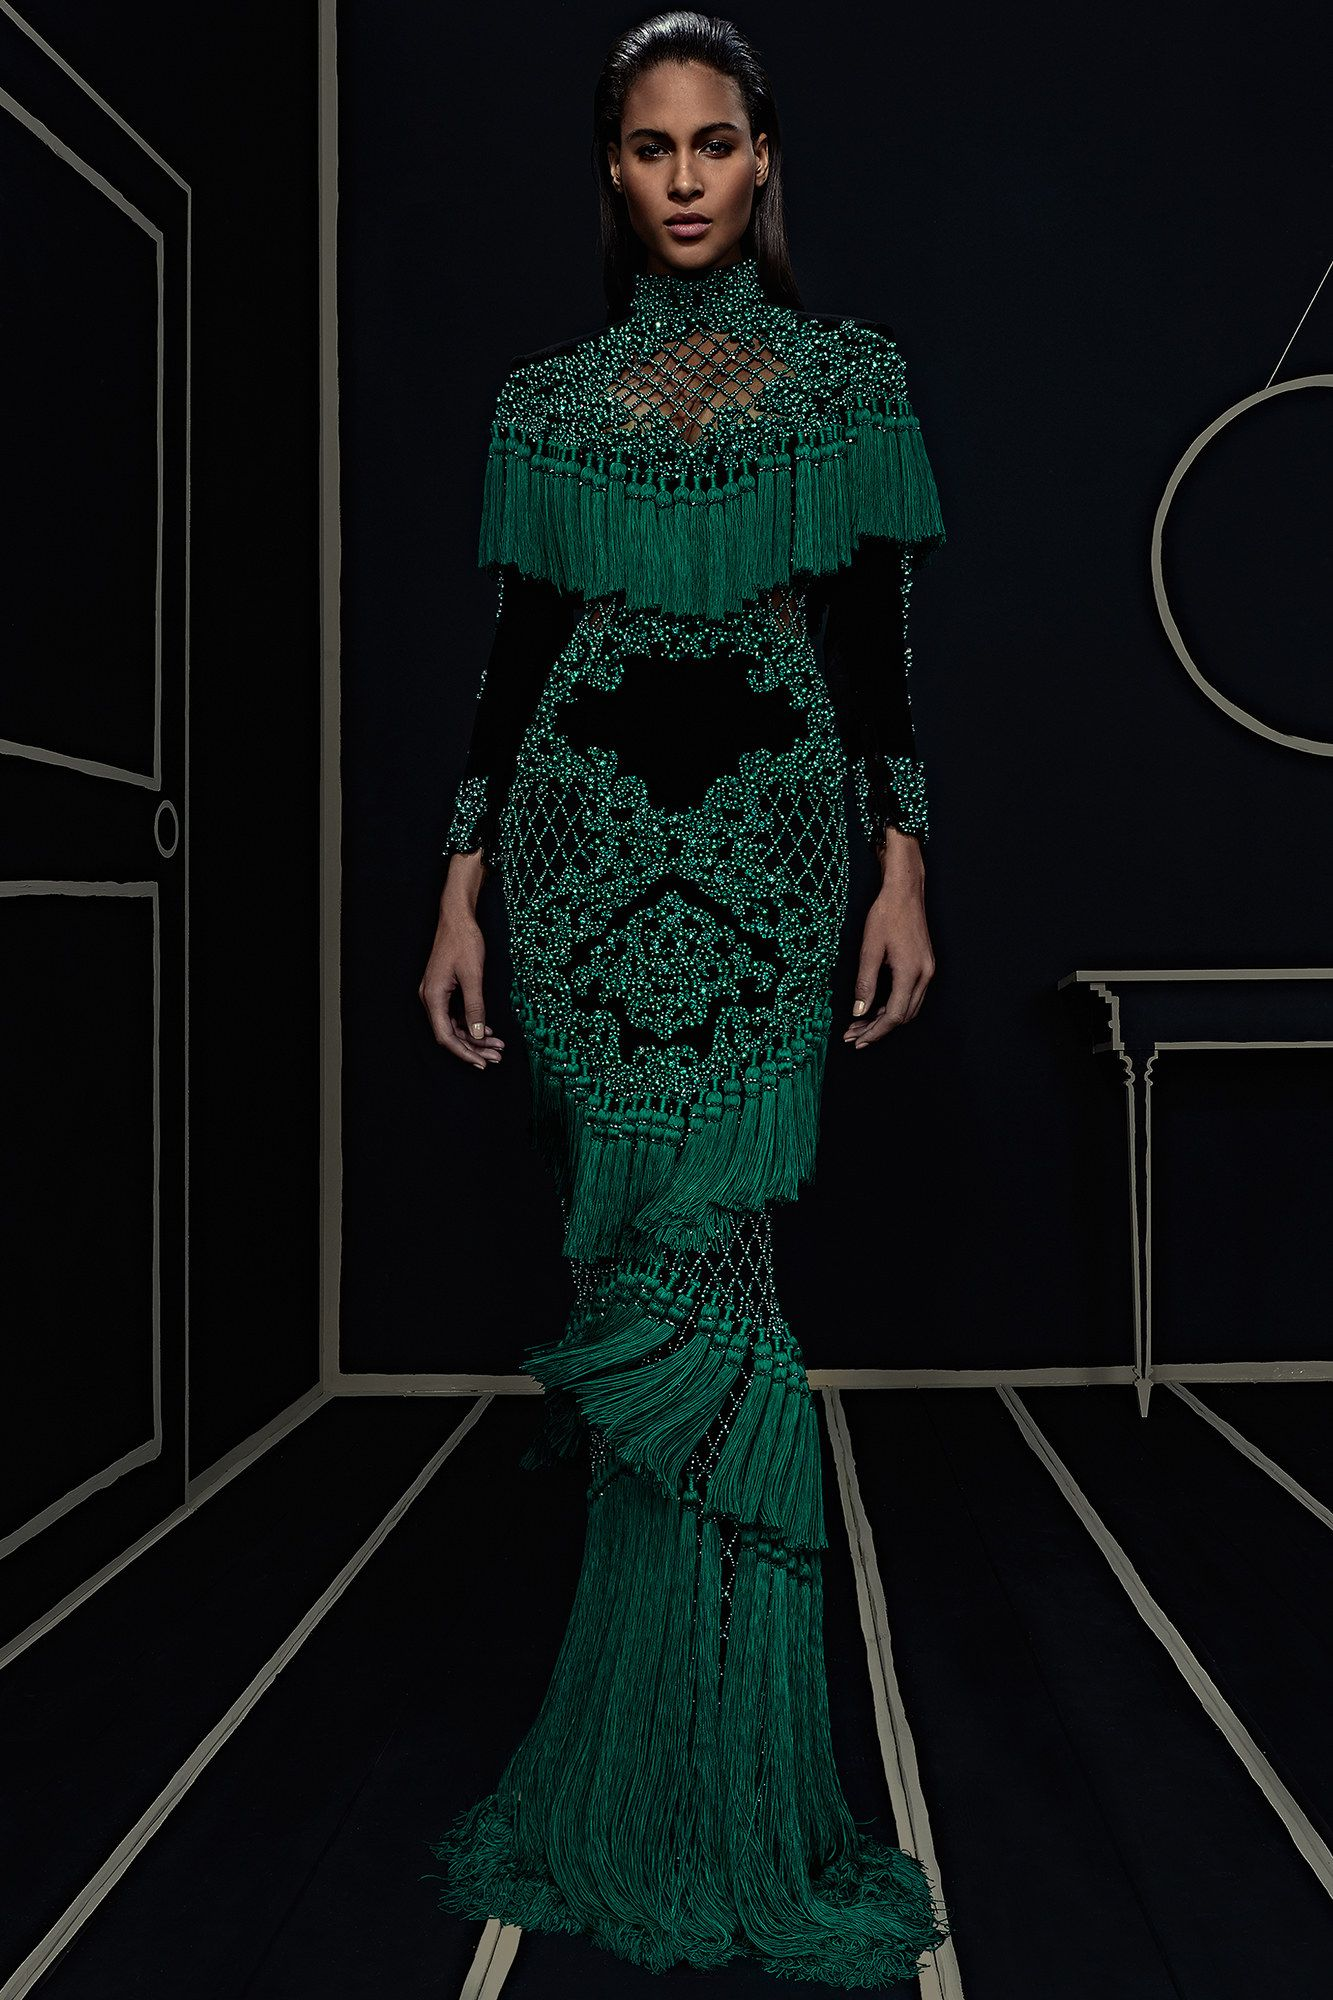 Ready To Wear Collection Via Designer Olivier Rousteing Gorgeous Gown Modeled By Cindy Bruna January 25 2016 New York